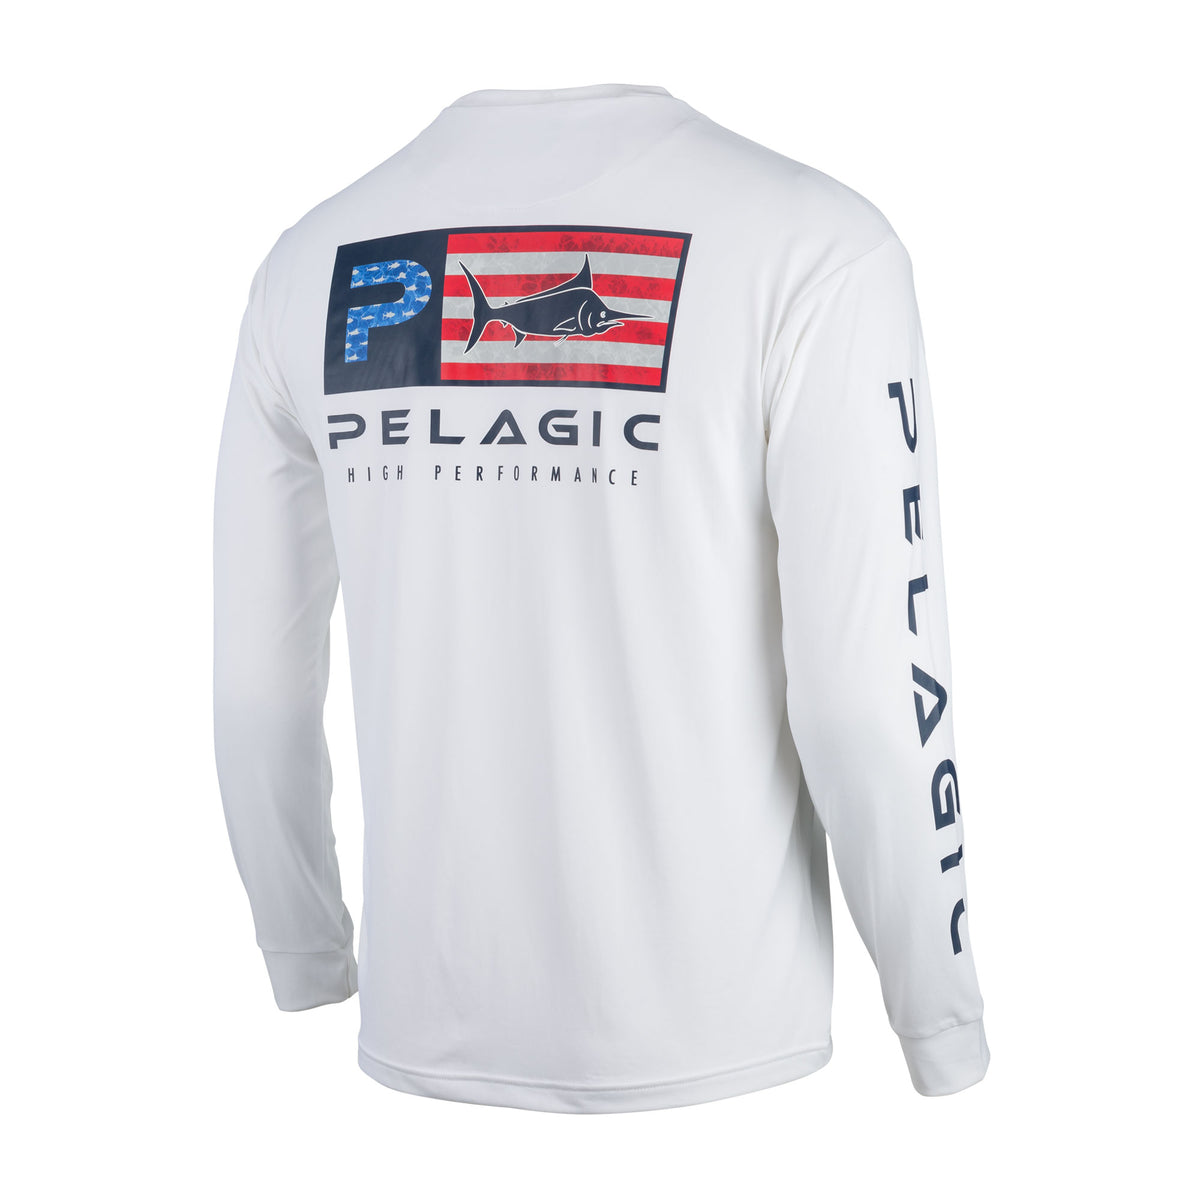 Aquatek Icon Long Sleeve Performance Shirt Big Image - 1